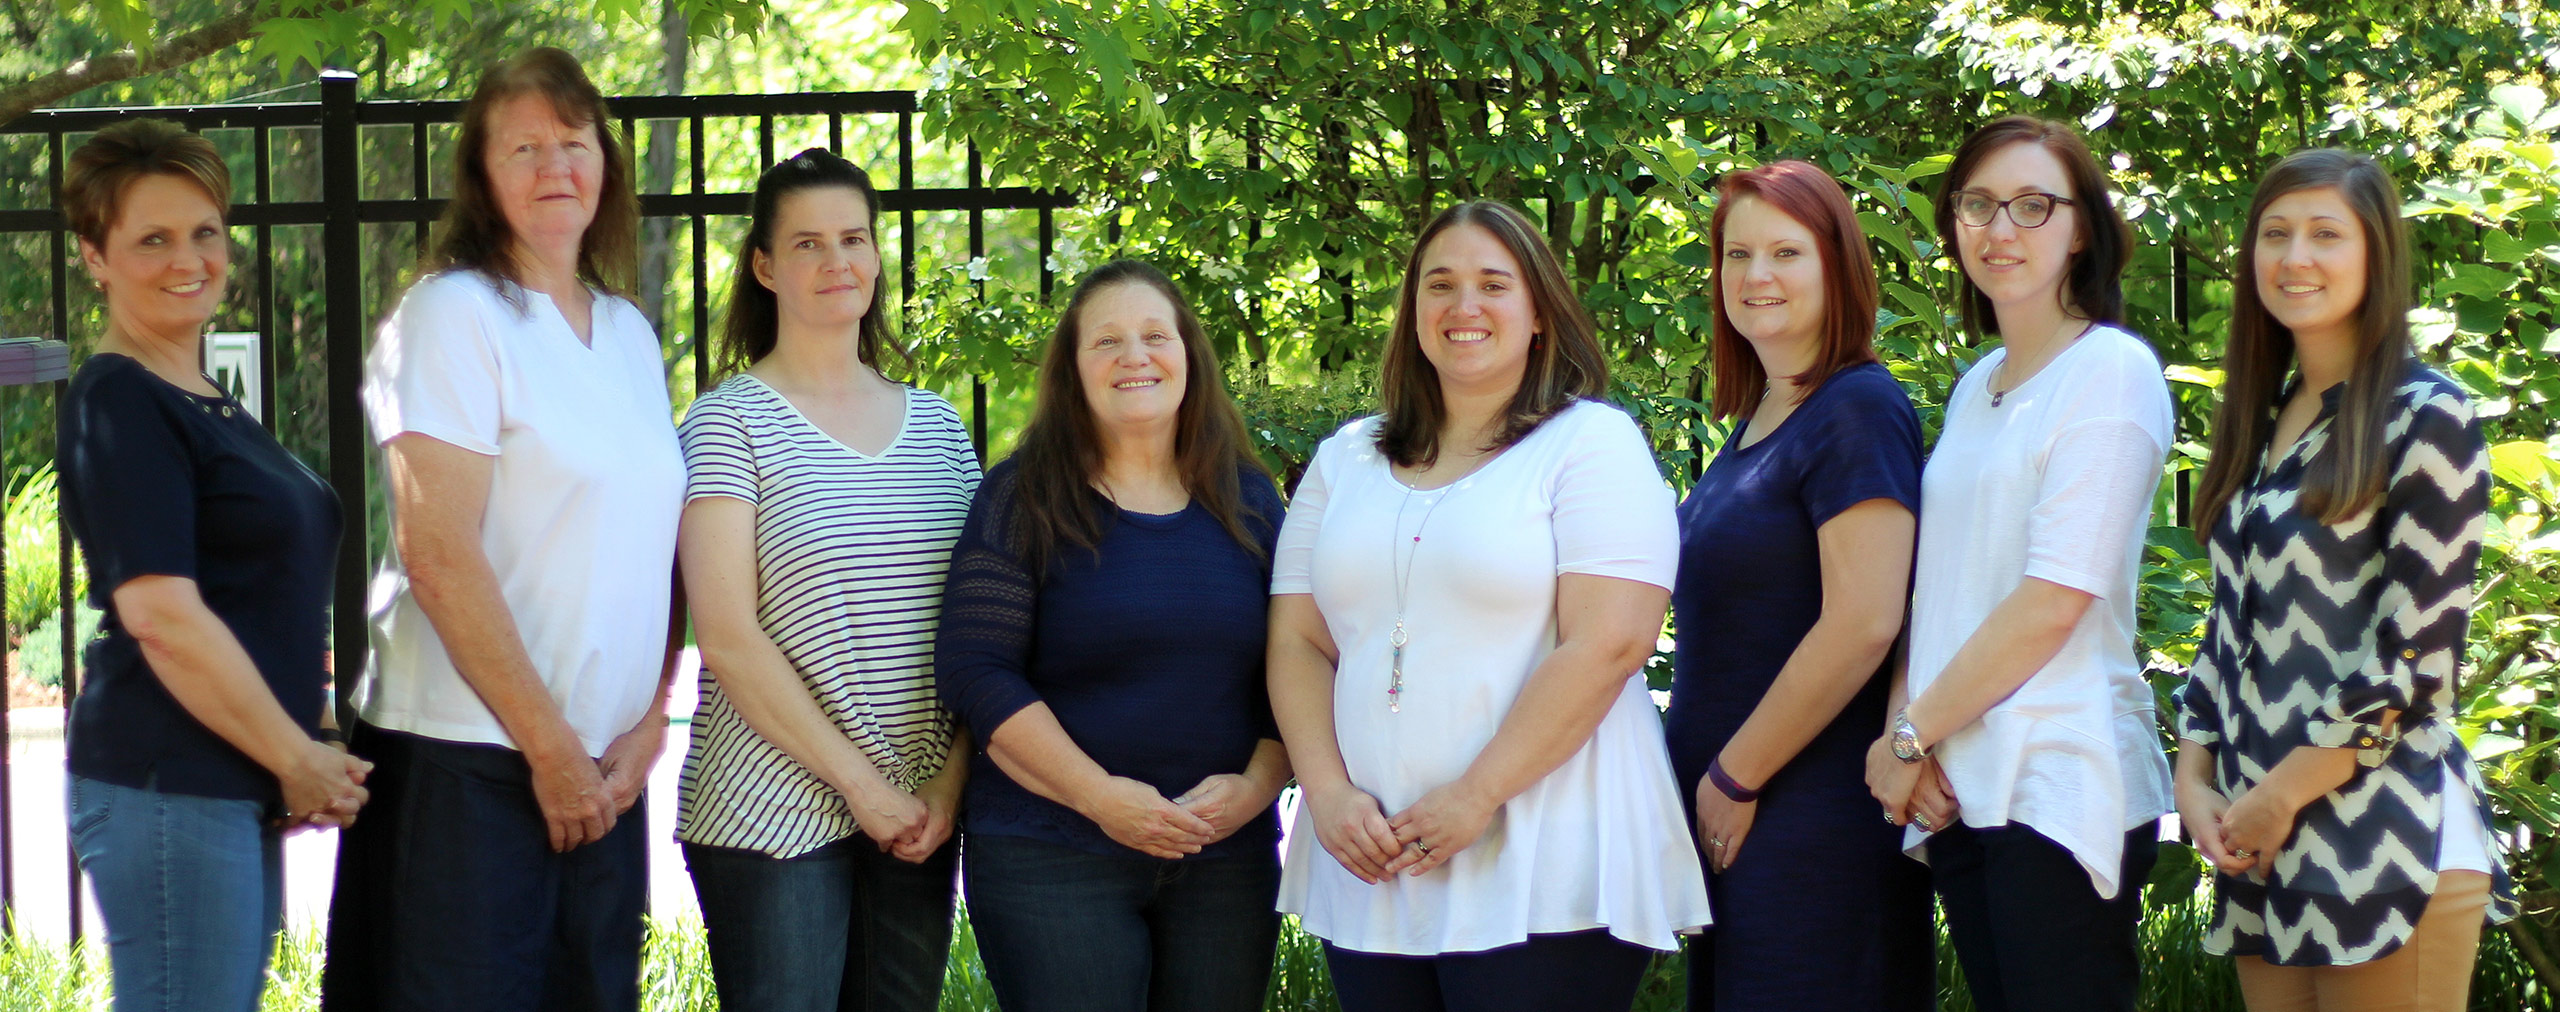 Wilkes Adult Daycare Staff